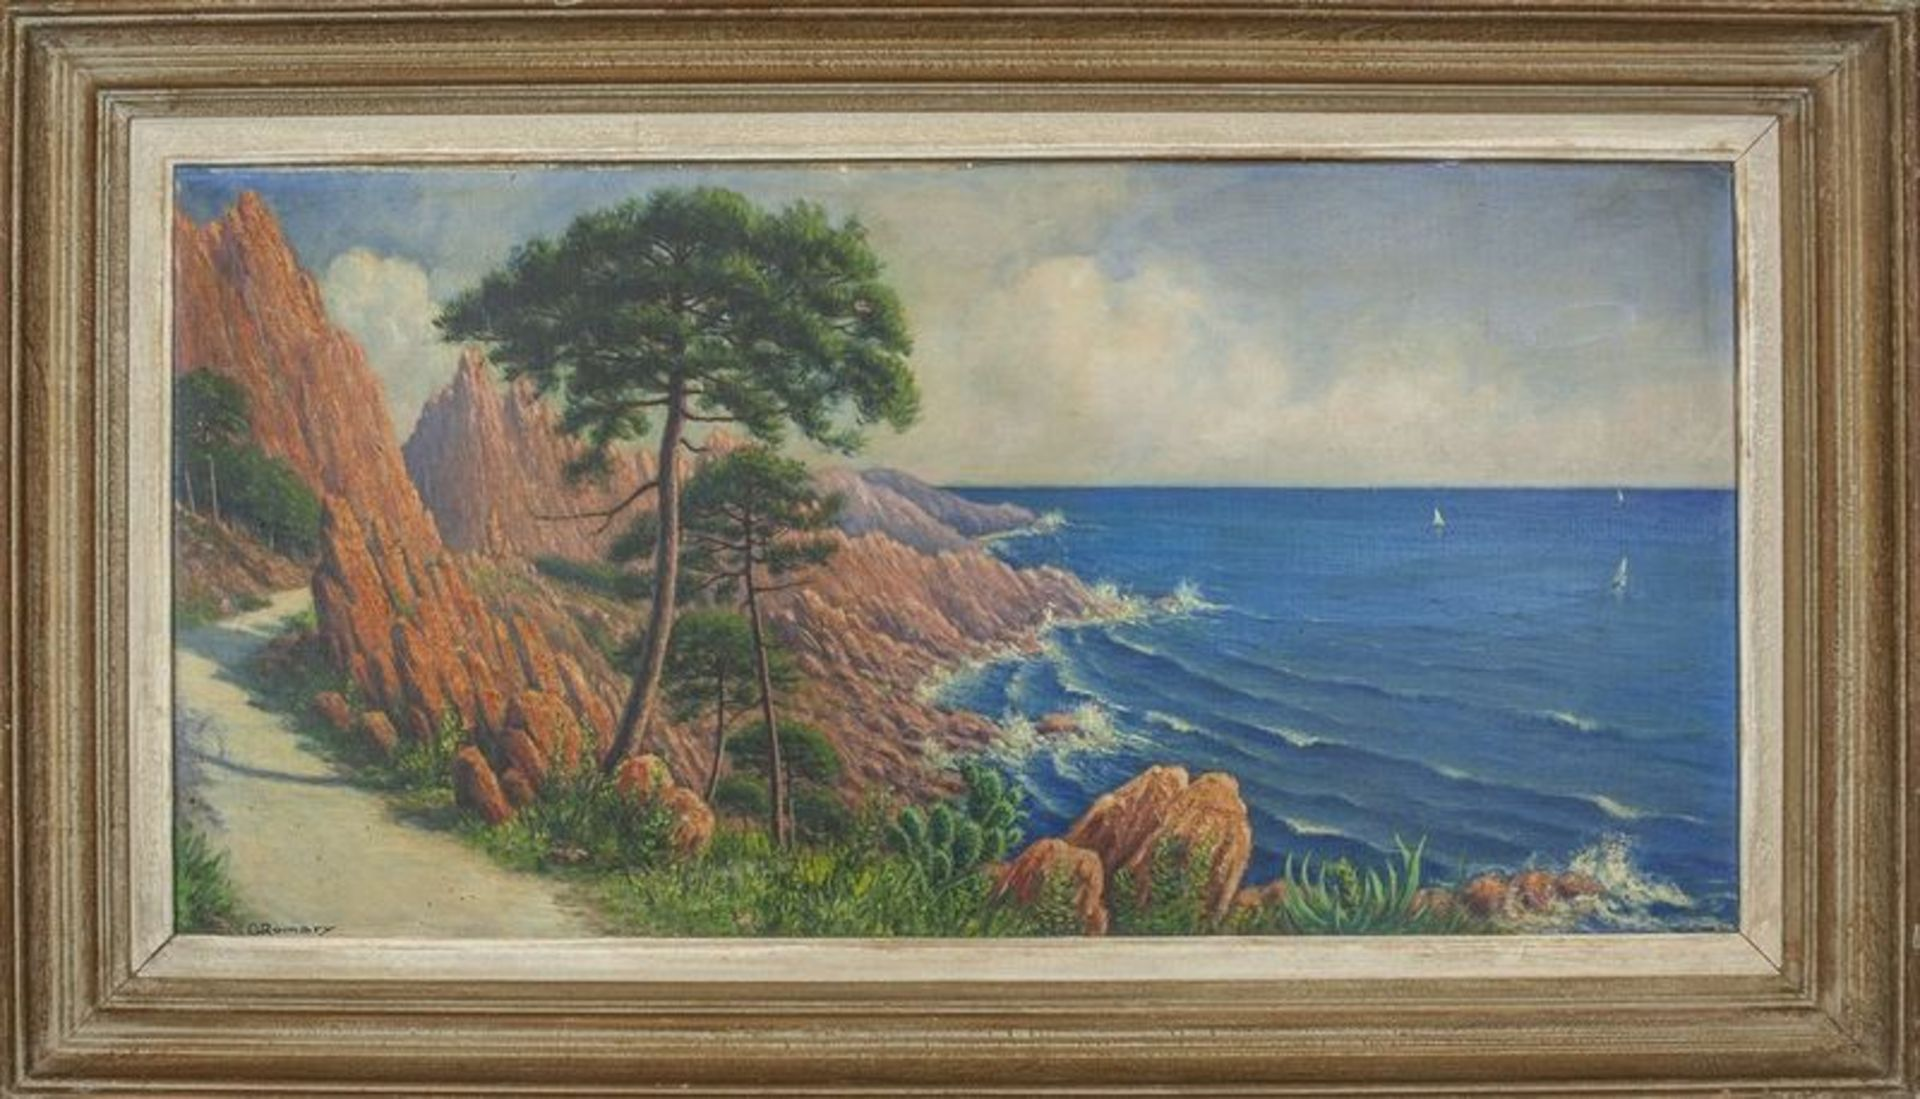 Los 598 - G. ROMARY Red Rocks of Cote d'Azur - Signed 'G Romary' (lower left) Oil on [...]